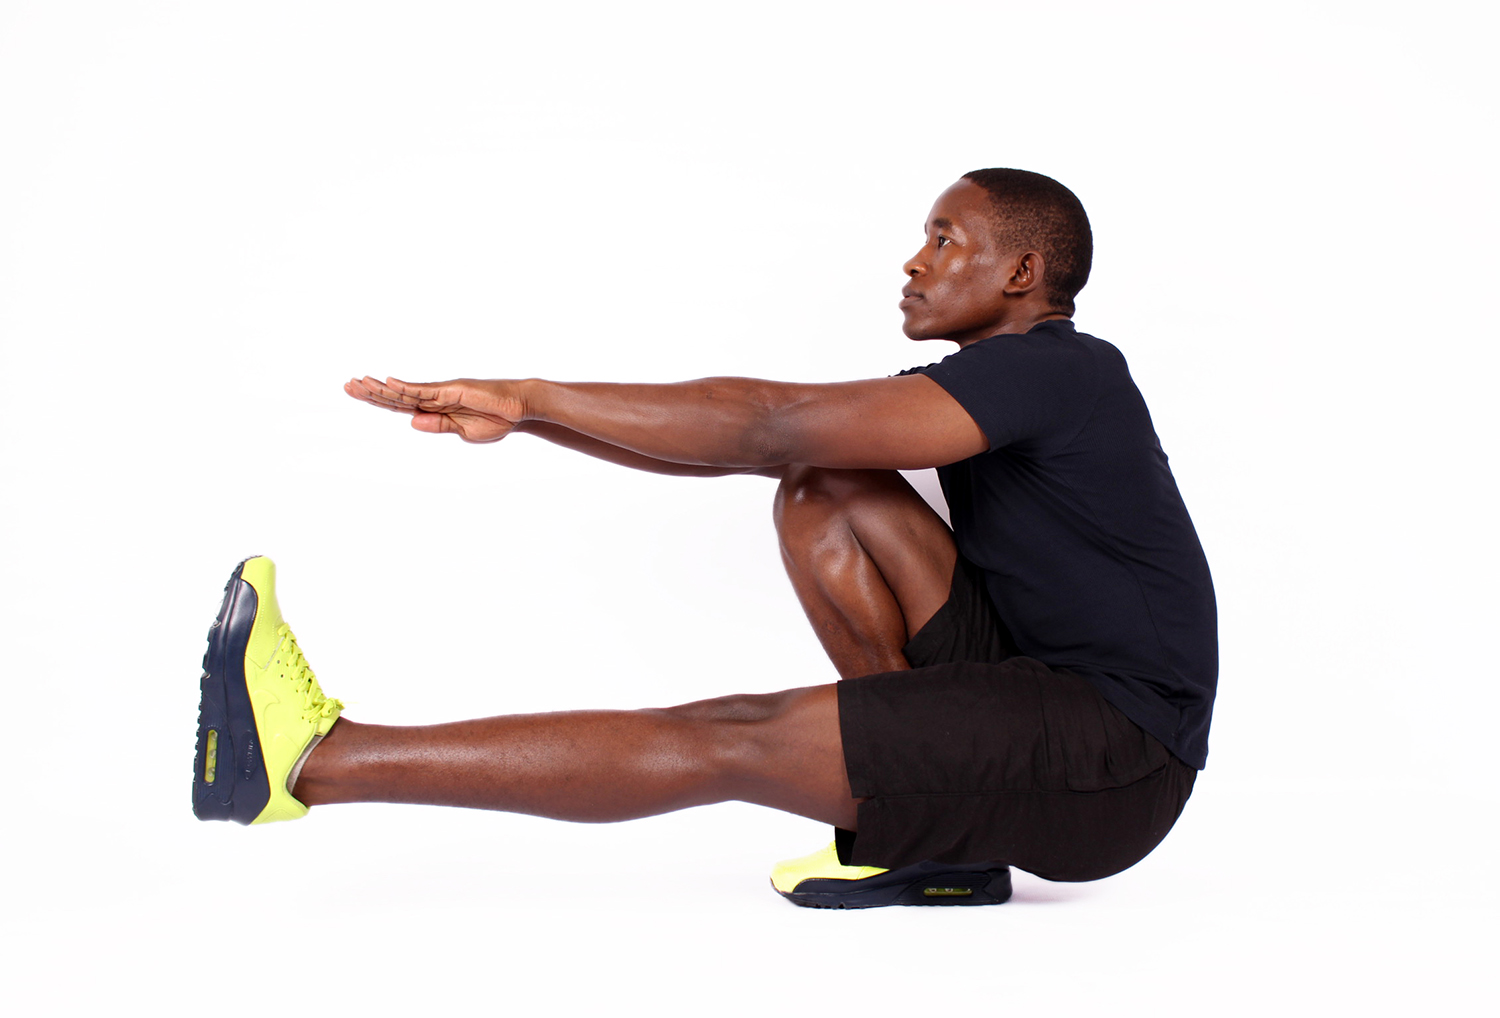 Muscular man doing pistol squat one legged squat exercise